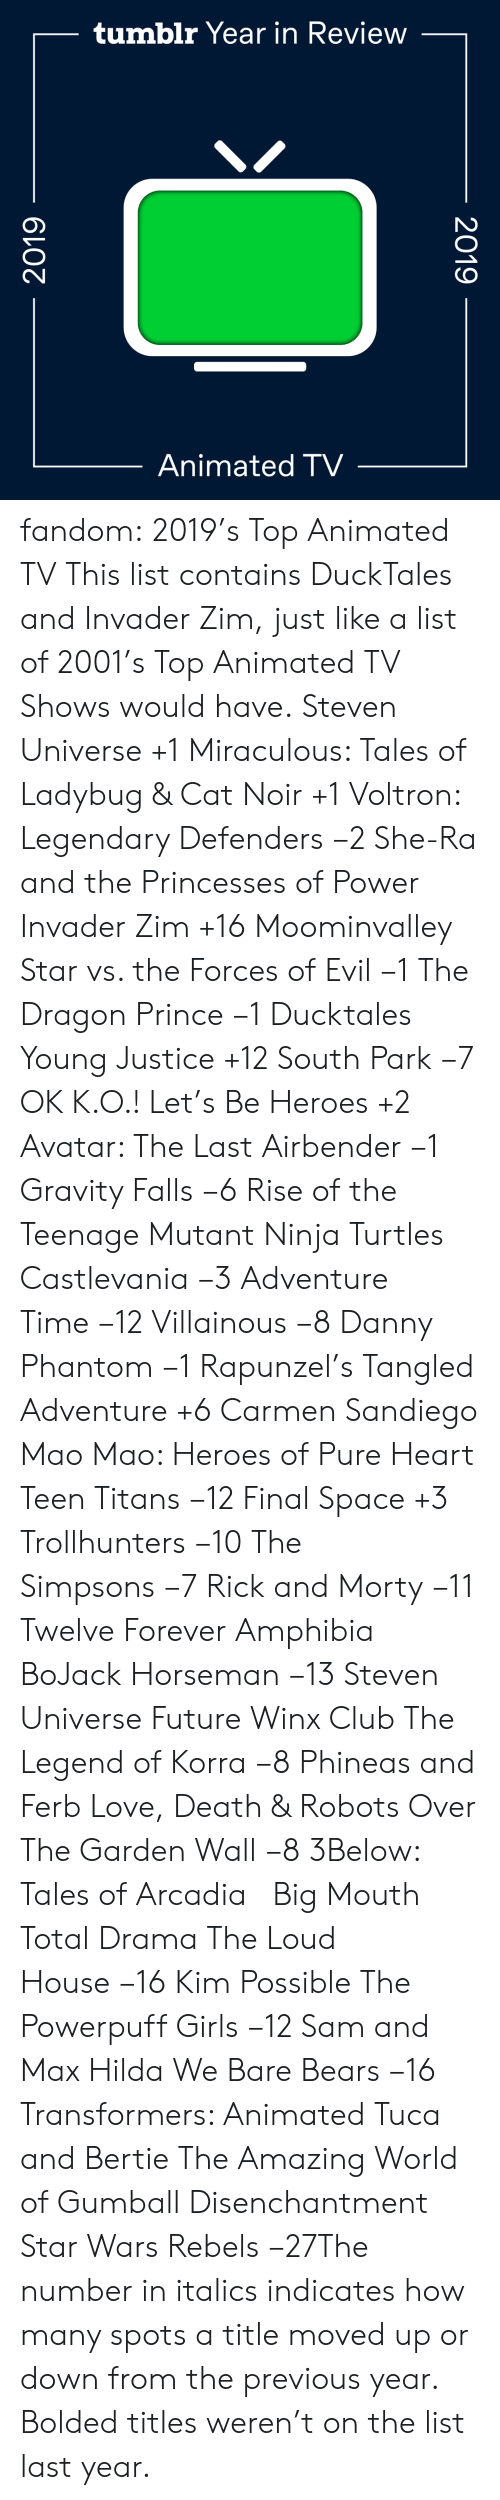 Bears: tumblr Year in Review  Animated TV  2019  2019 fandom:  2019's Top Animated TV  This list contains DuckTales and Invader Zim, just like a list of 2001's Top Animated TV Shows would have.  Steven Universe +1  Miraculous: Tales of Ladybug & Cat Noir +1  Voltron: Legendary Defenders −2  She-Ra and the Princesses of Power   Invader Zim +16  Moominvalley  Star vs. the Forces of Evil −1  The Dragon Prince −1  Ducktales  Young Justice +12  South Park −7  OK K.O.! Let's Be Heroes +2  Avatar: The Last Airbender −1  Gravity Falls −6  Rise of the Teenage Mutant Ninja Turtles  Castlevania −3  Adventure Time −12  Villainous −8  Danny Phantom −1  Rapunzel's Tangled Adventure +6  Carmen Sandiego  Mao Mao: Heroes of Pure Heart  Teen Titans −12  Final Space +3  Trollhunters −10  The Simpsons −7  Rick and Morty −11  Twelve Forever  Amphibia  BoJack Horseman −13  Steven Universe Future  Winx Club  The Legend of Korra −8  Phineas and Ferb  Love, Death & Robots  Over The Garden Wall −8  3Below: Tales of Arcadia    Big Mouth  Total Drama  The Loud House −16  Kim Possible  The Powerpuff Girls −12  Sam and Max  Hilda  We Bare Bears −16  Transformers: Animated  Tuca and Bertie  The Amazing World of Gumball  Disenchantment Star Wars Rebels −27The number in italics indicates how many spots a title moved up or down from the previous year. Bolded titles weren't on the list last year.